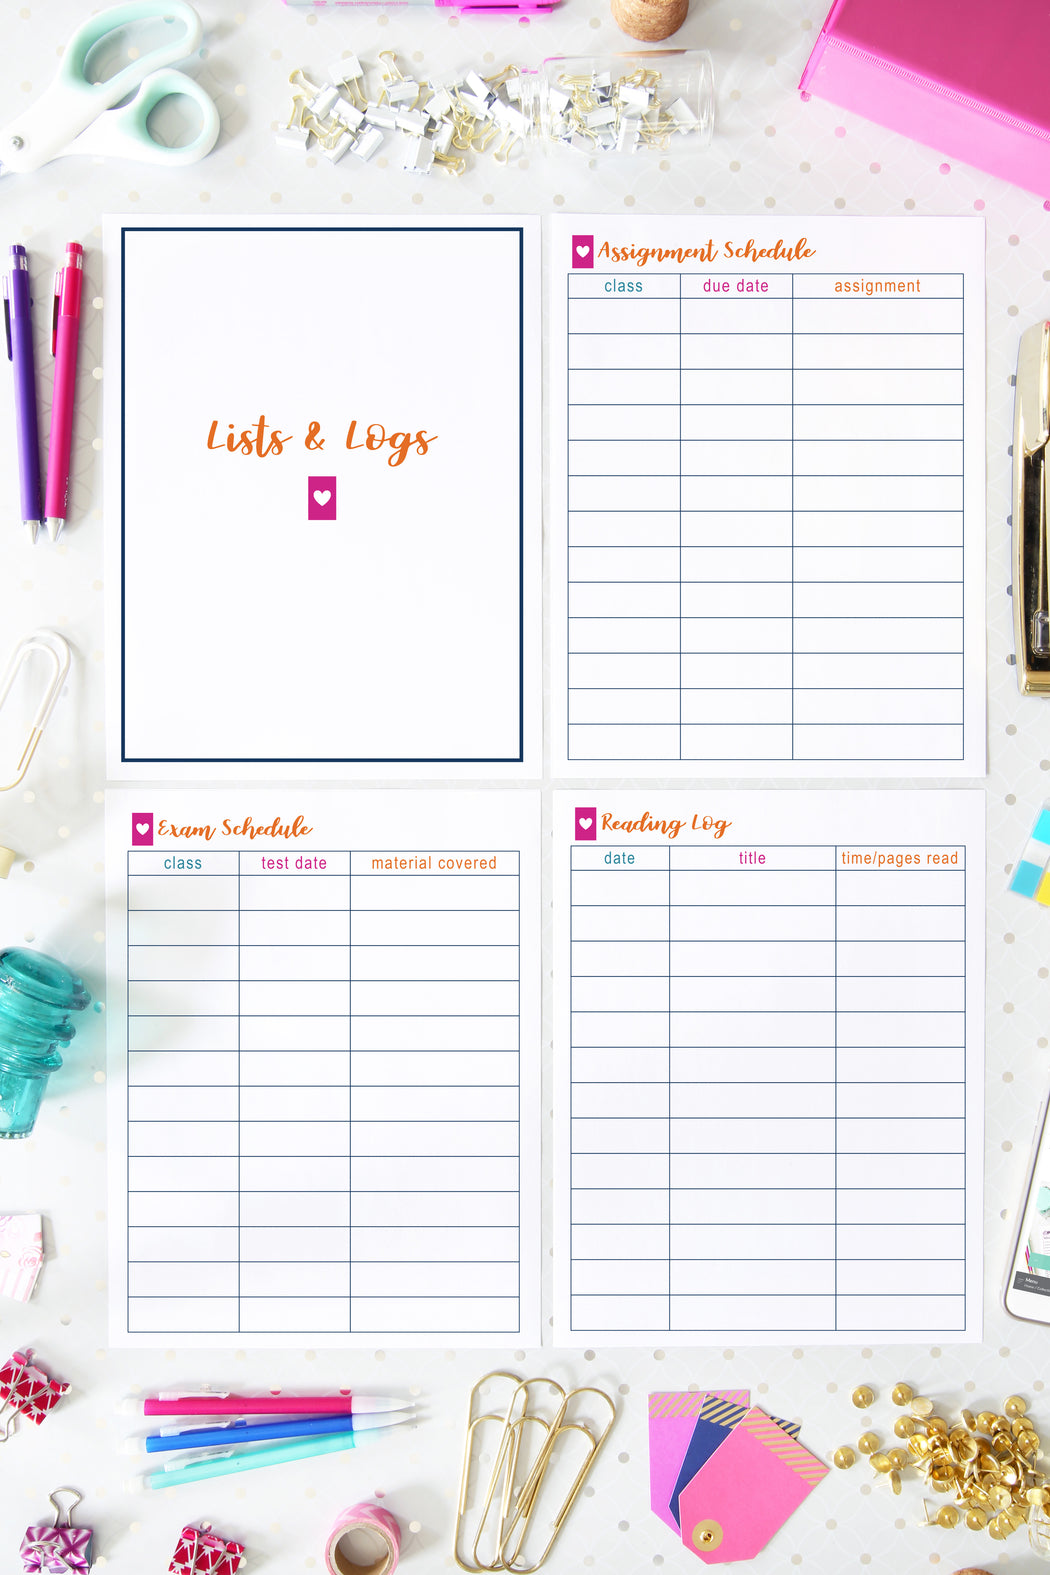 Deluxe Student Binder Printables, organizing printables, organized binder for students, #printables #organizing